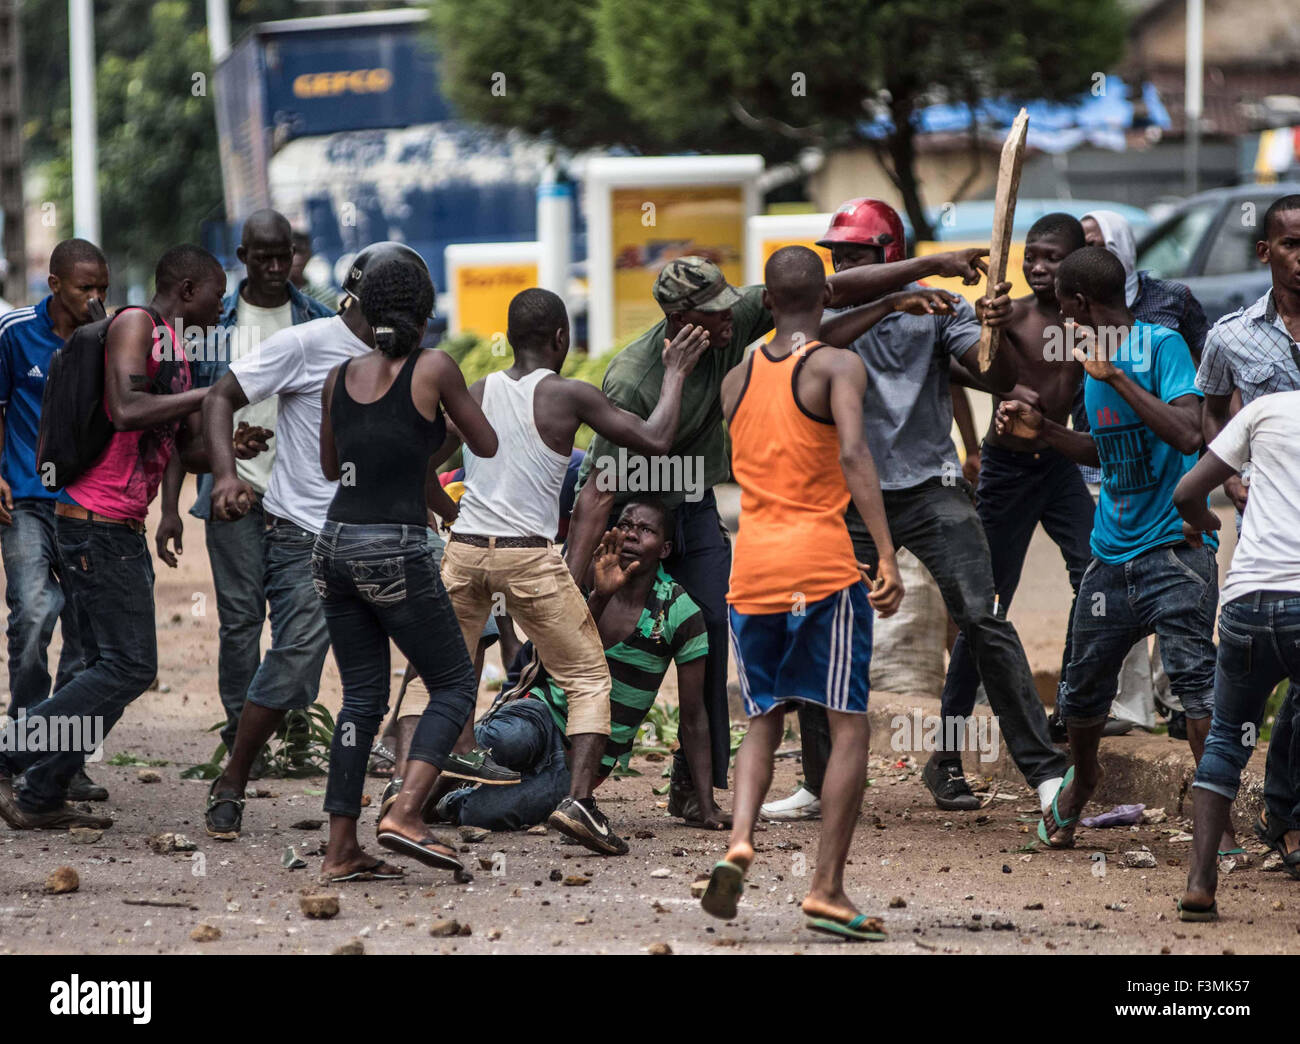 A man is beaten up during political violence in Conakry, Guinea ahead of  elections in 2010.